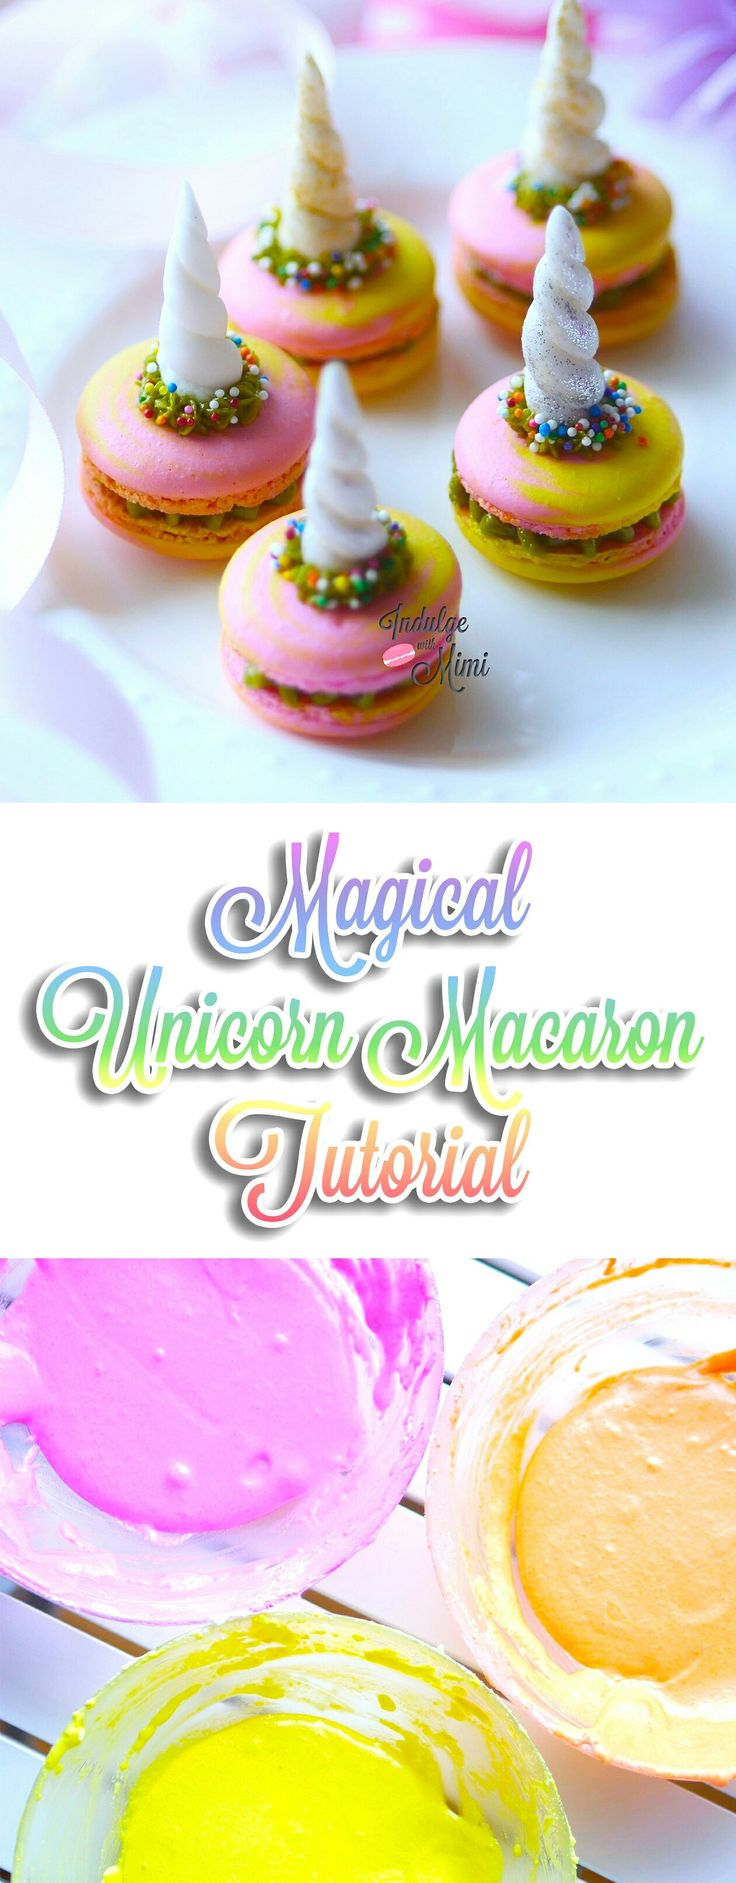 Magical Tri-Color Unicorn Macaron Tutorial with Recipe and Video